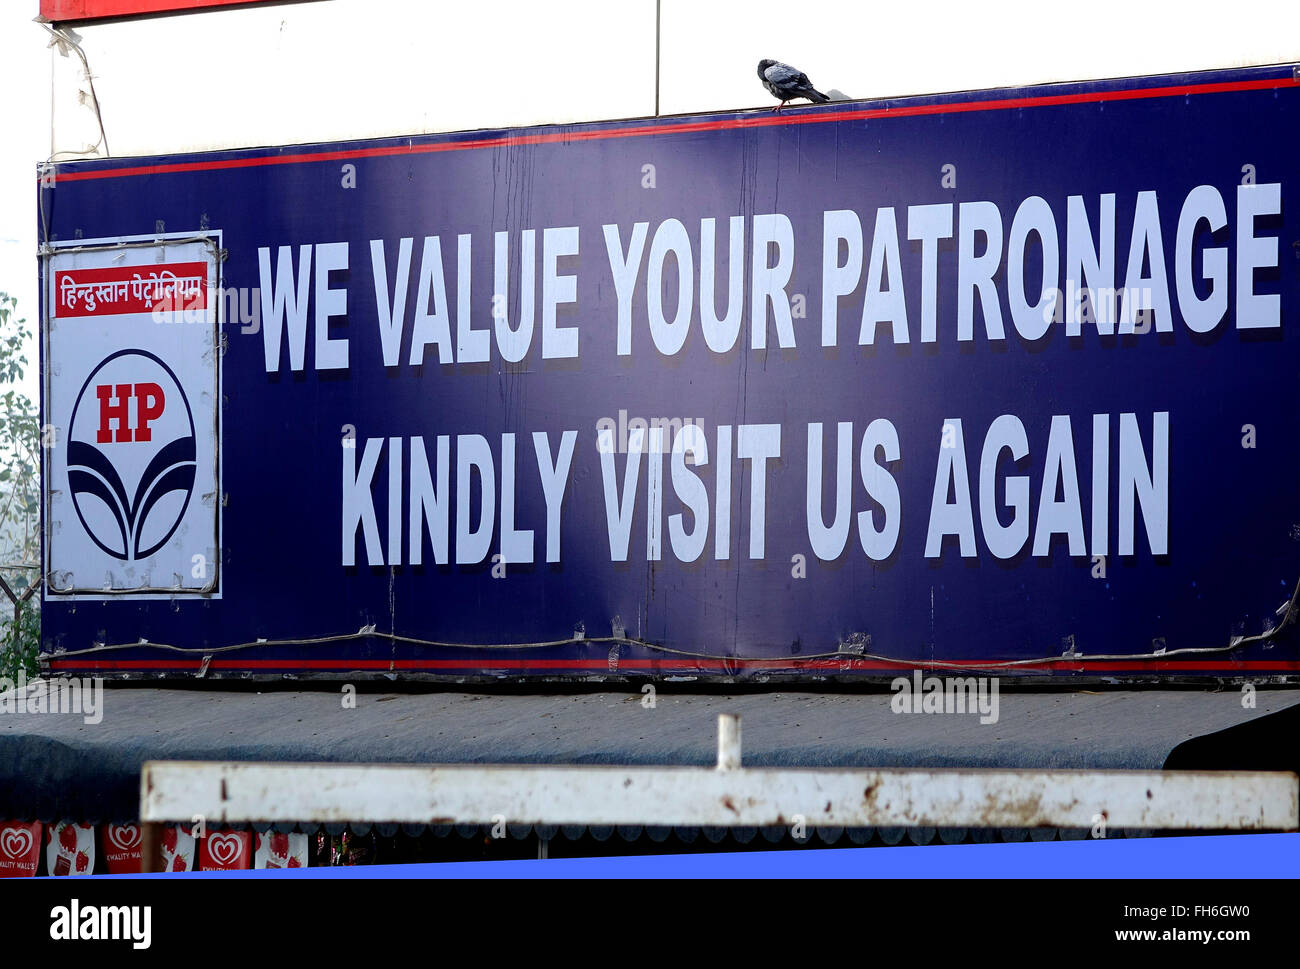 Welcome signage board of the major Indian Oil producing company - HP, Hindustan Petroleum - at a Petrol Station - Stock Image